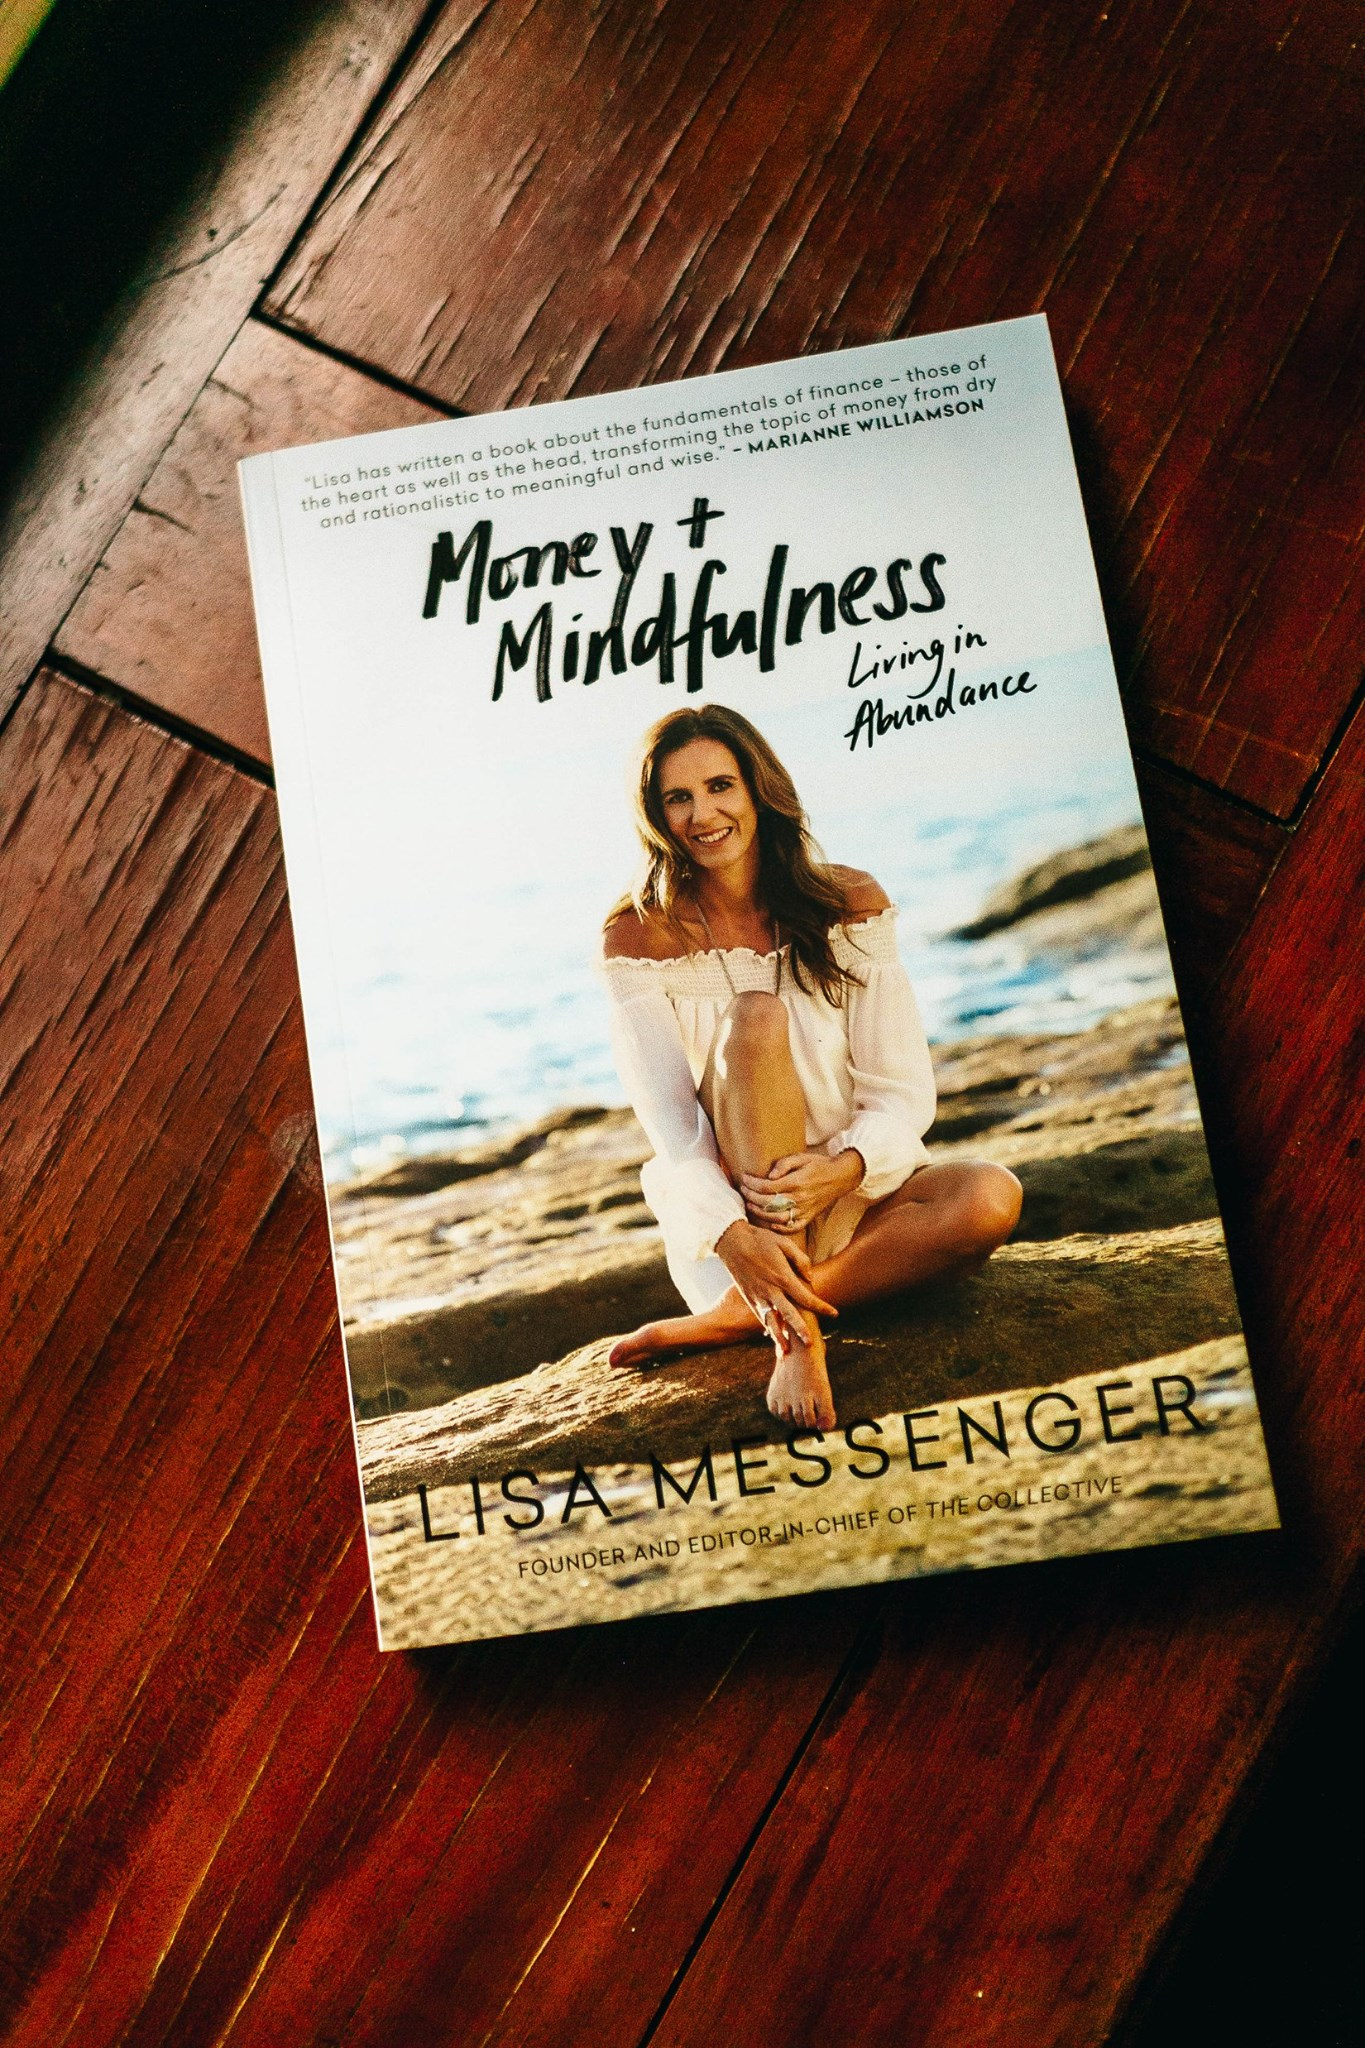 One of the excellent book giveaways, 'Money + Mindfulness' by Lisa Messenger